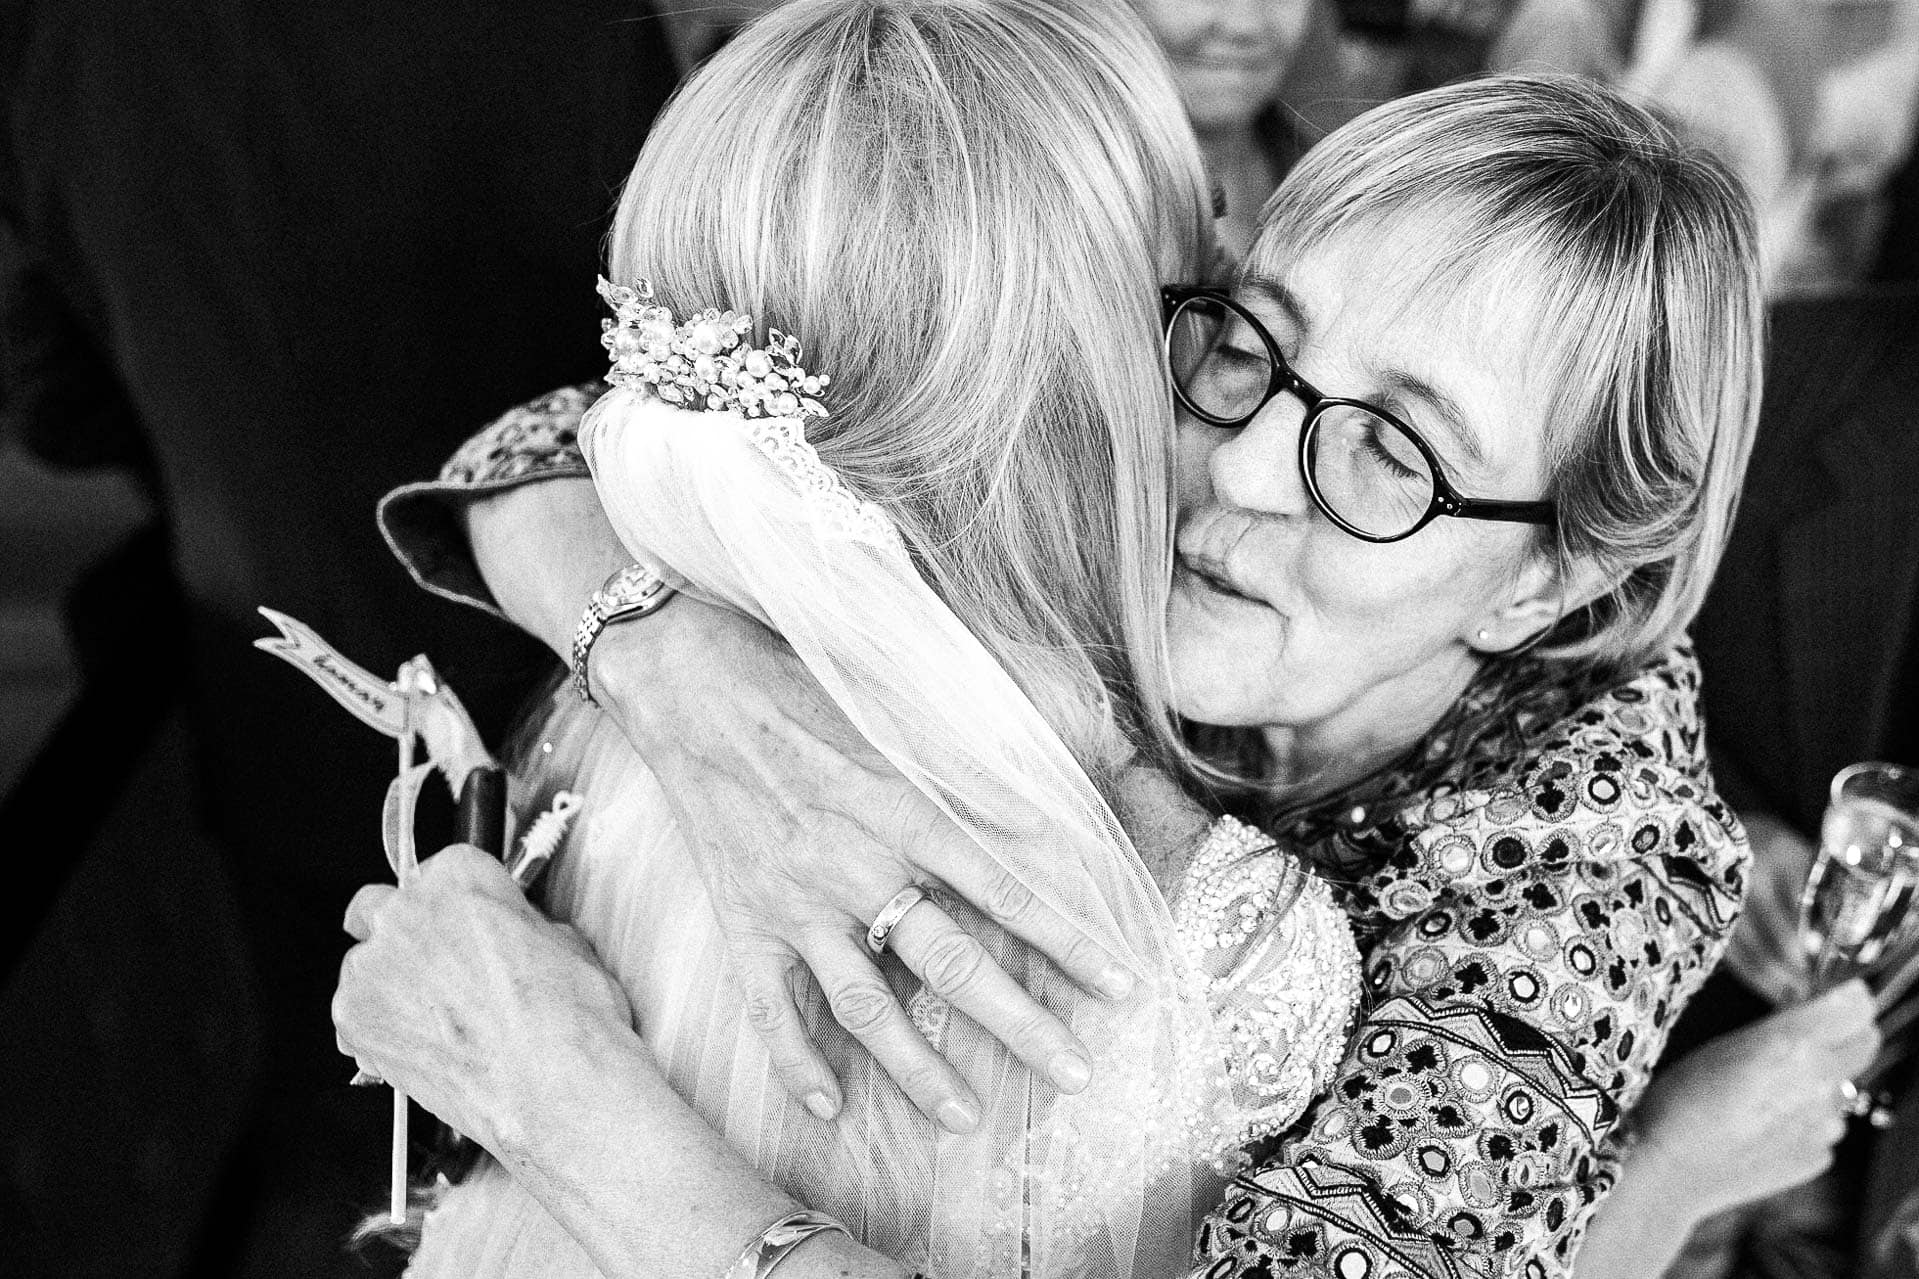 Oddfellows on the Park Monochrome Wedding Photography - VA - hugging after the wedding ceremony